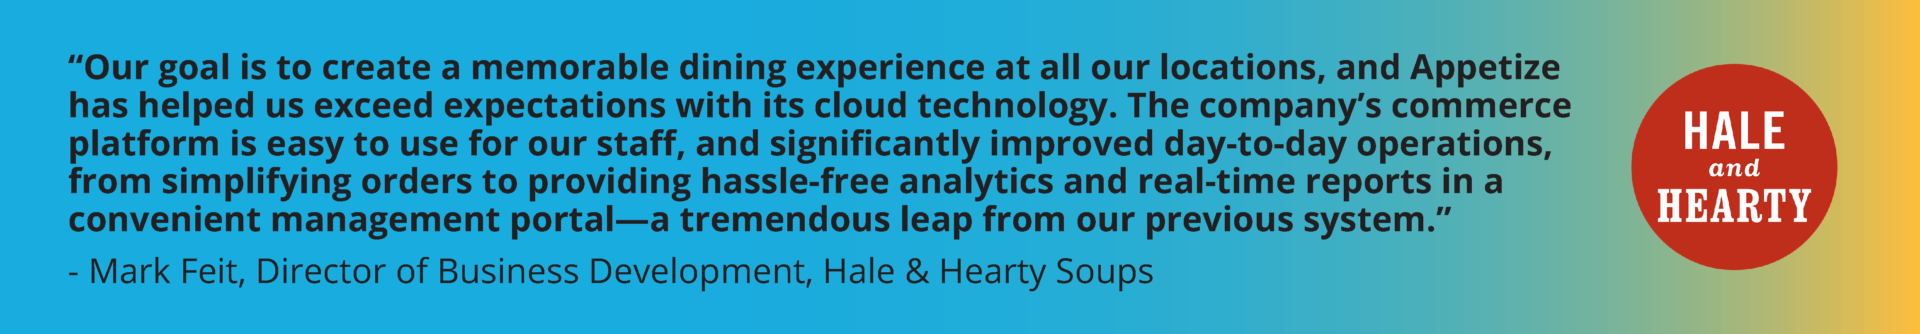 hale and hearty case study delighting customers